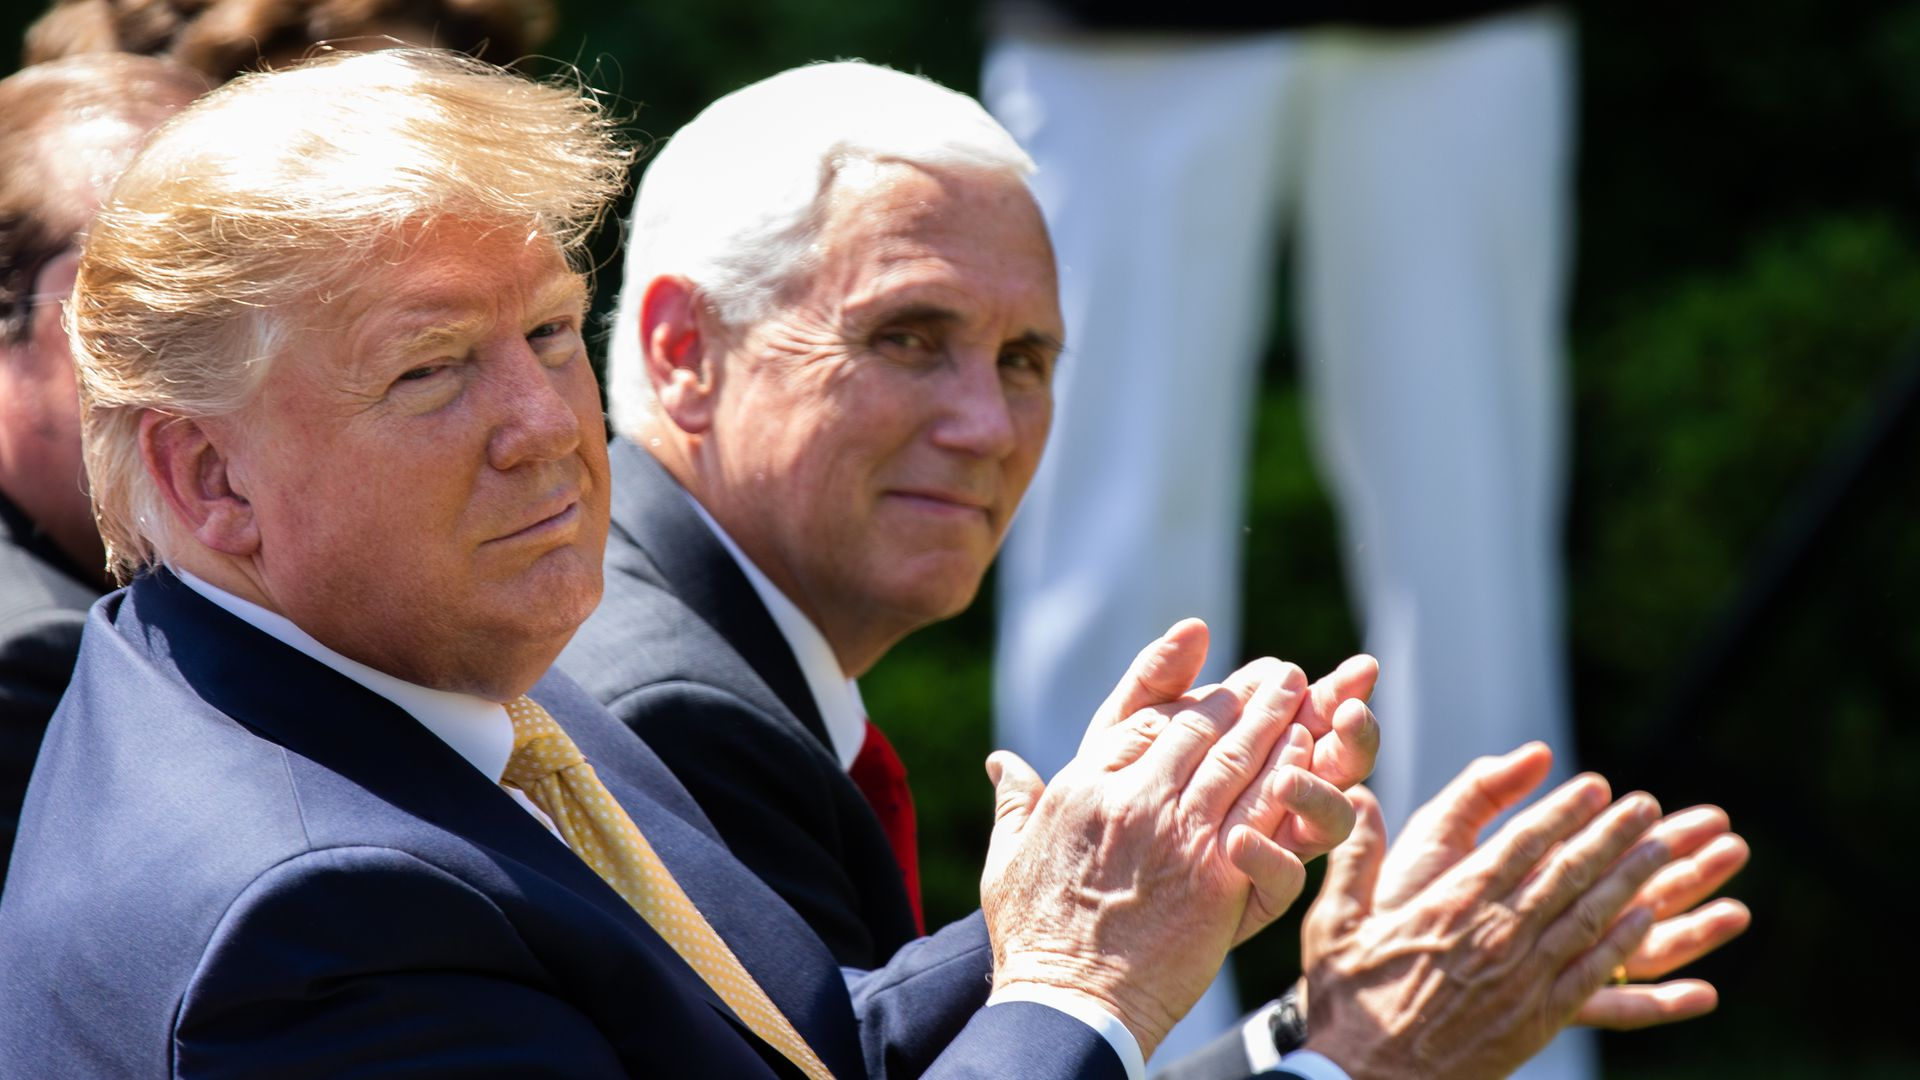 Trump and Pence clapping